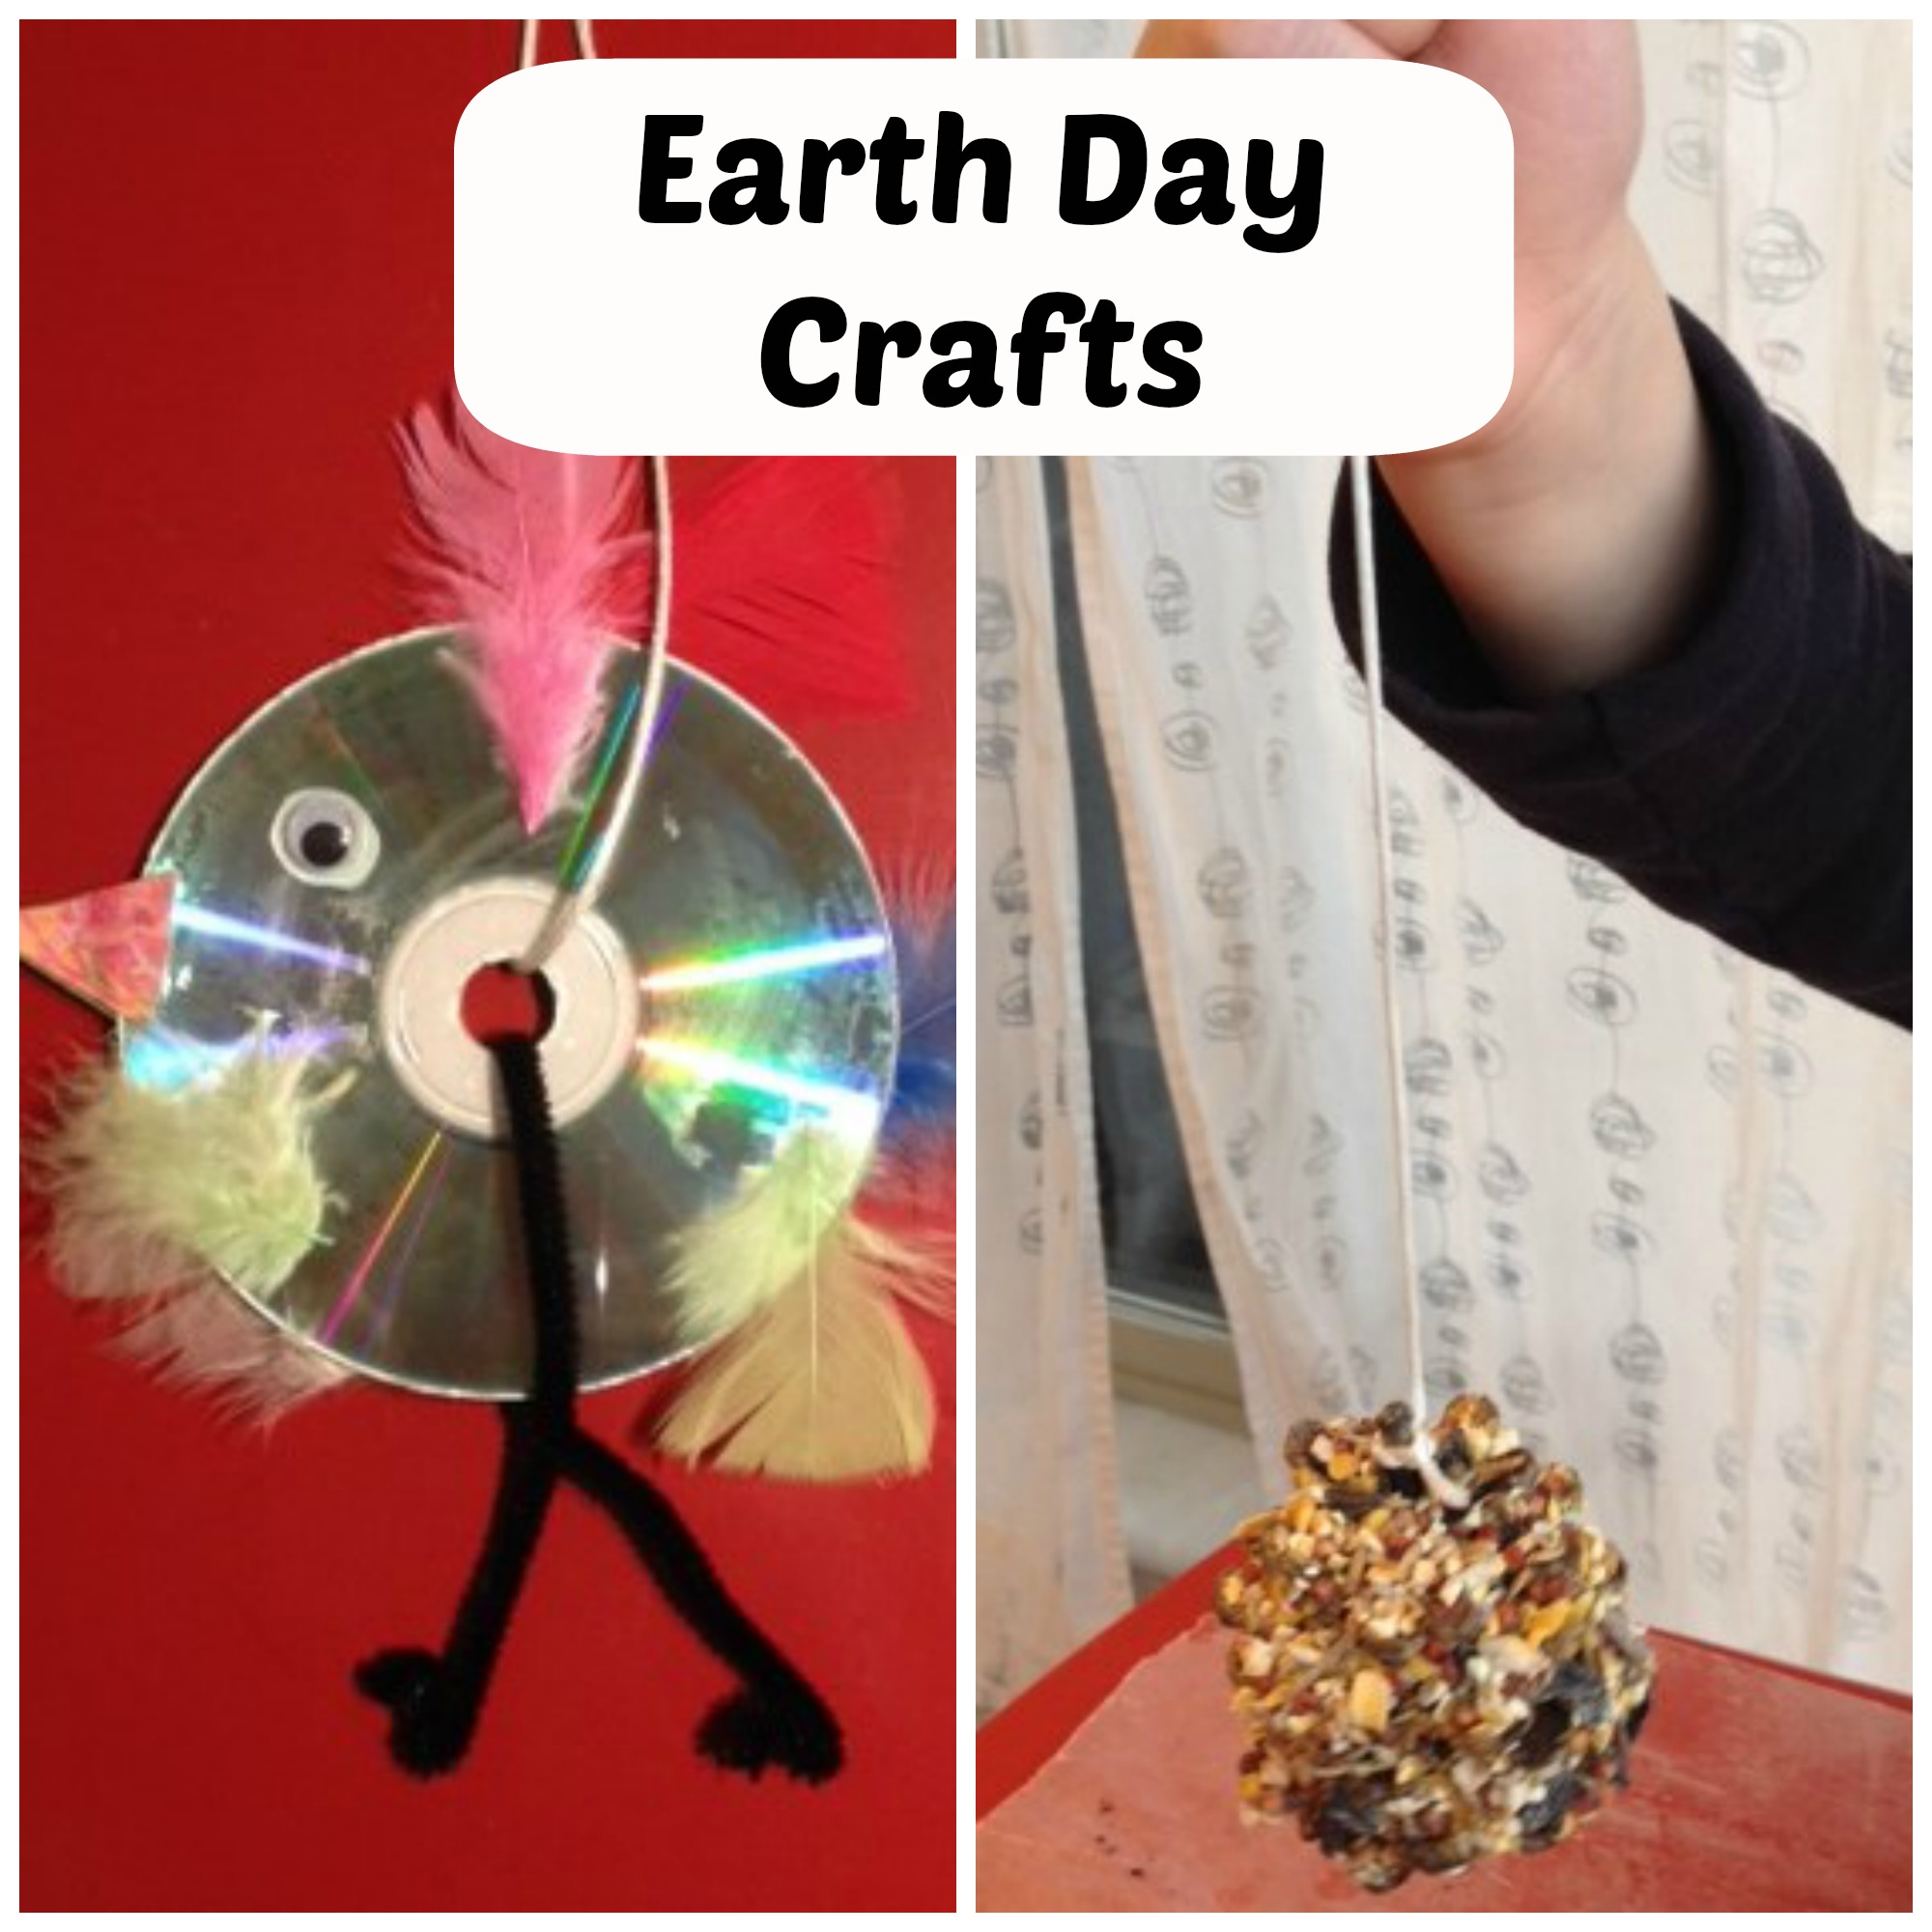 Earth Day Crafts - The Write Balance